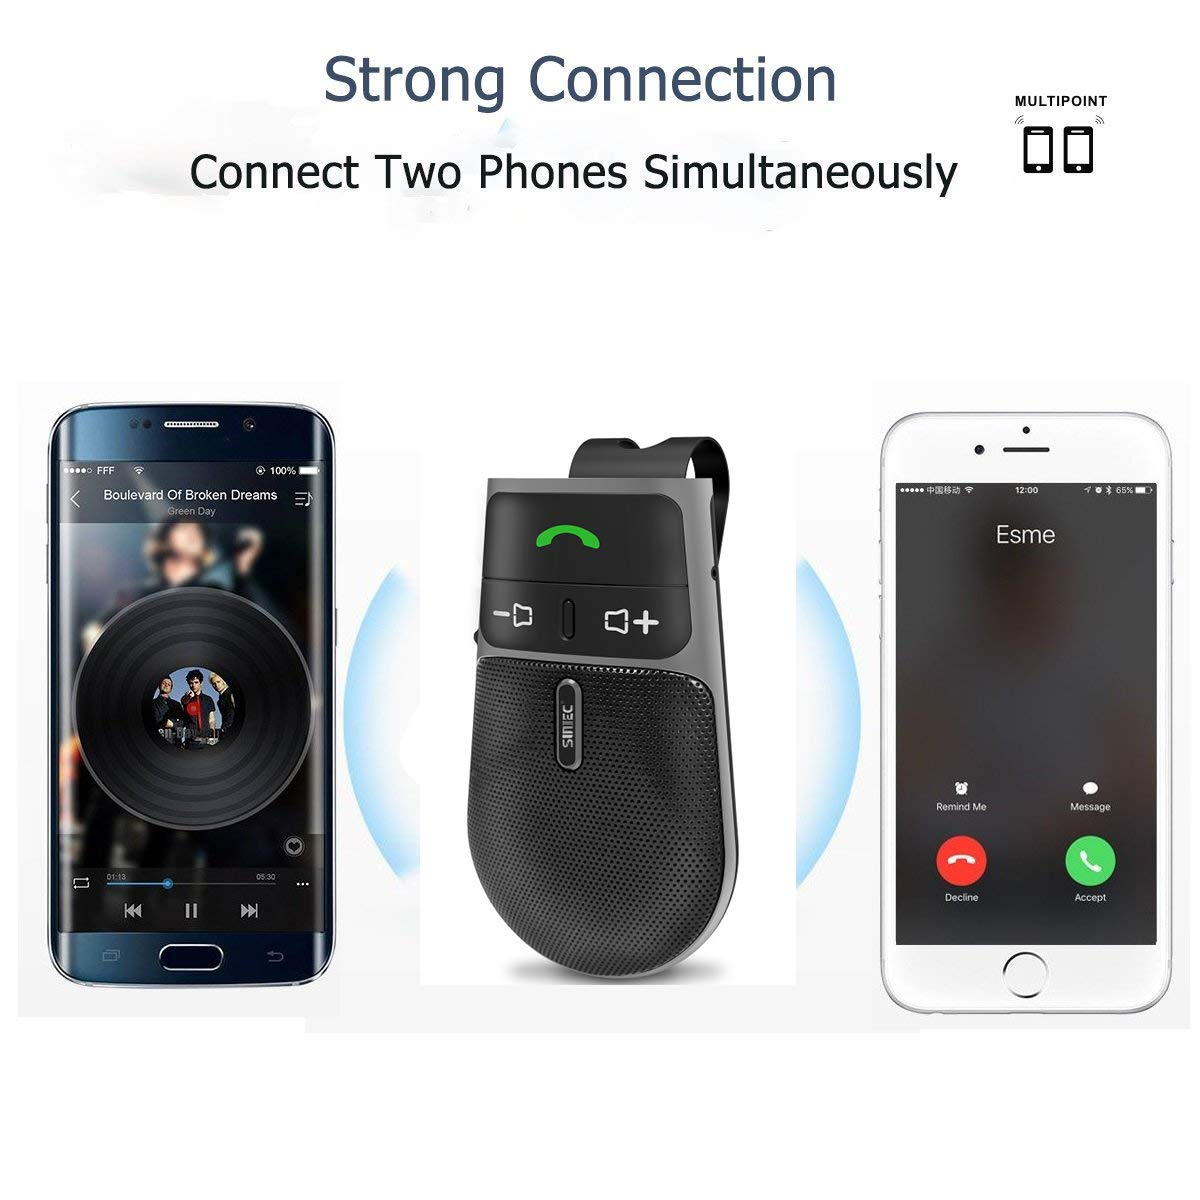 2019 SUNITEC BC920 Bluetooth Hands Free Car Kit, Connects with Siri & Google Assistant, Auto On Off, Handsfree Speakerphone Wireless in Car, 2W Powerful Speaker, Dual Link Connectivity & Visor Clip by Sunitec (Image #7)